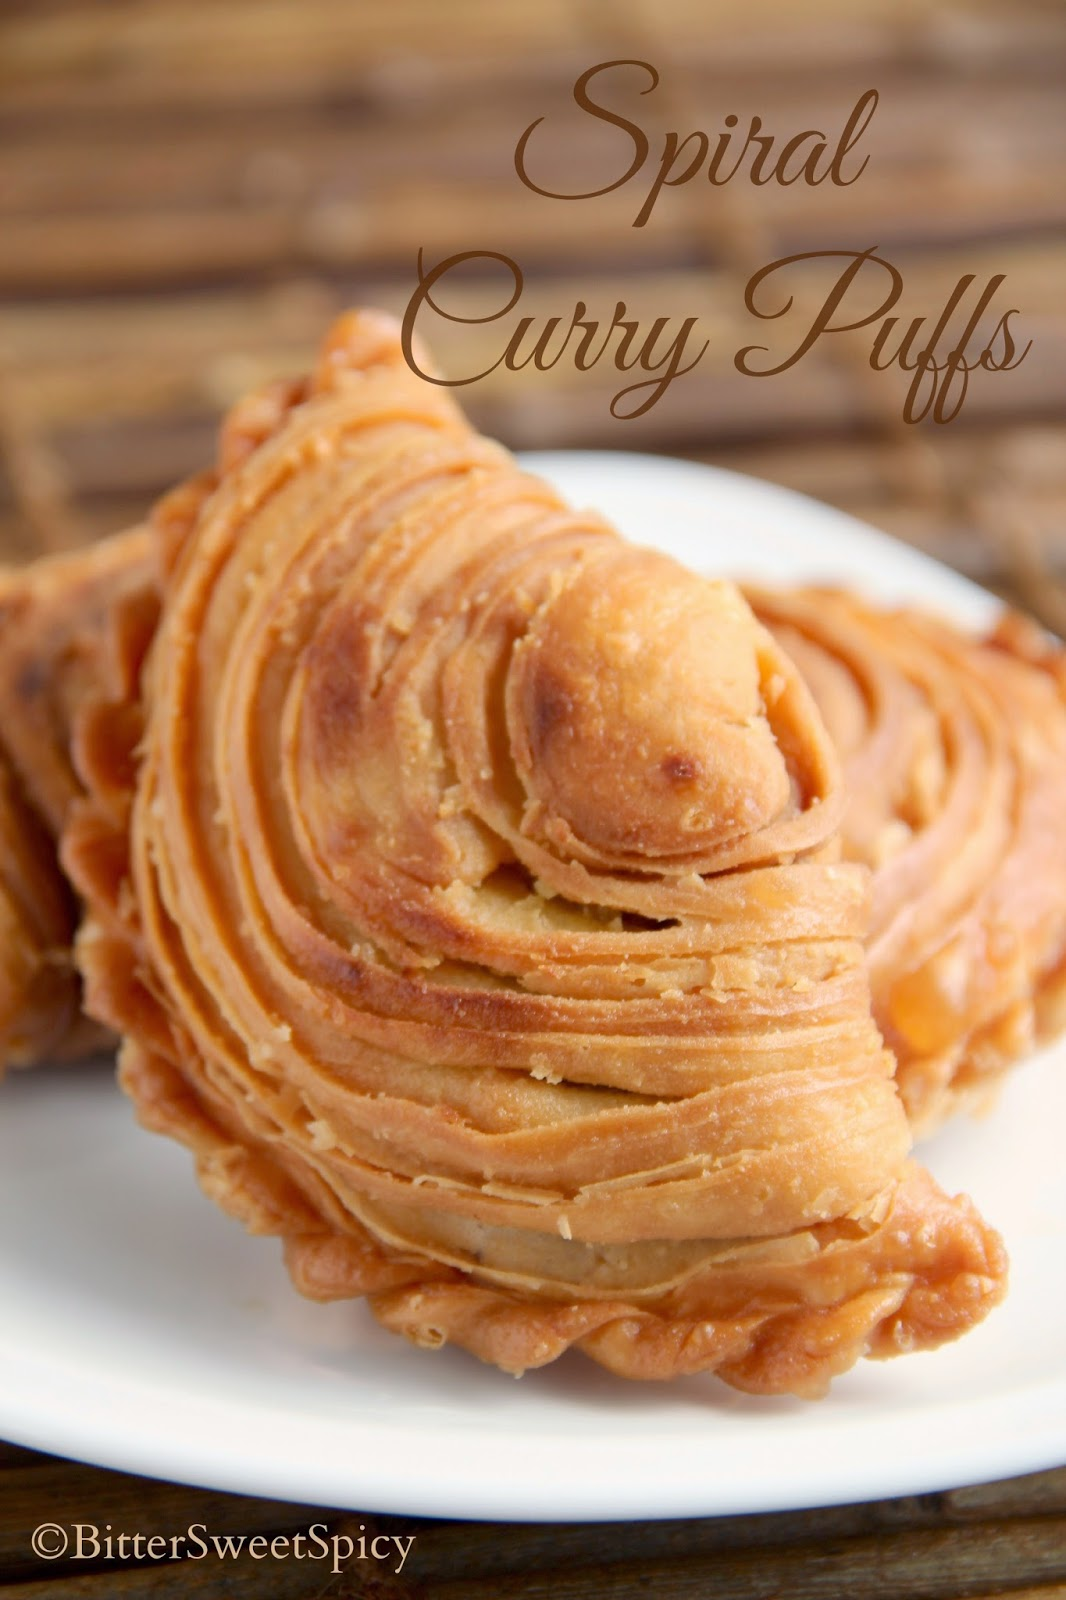 Frozen Puff Pastry Recipes - Allrecipes.com